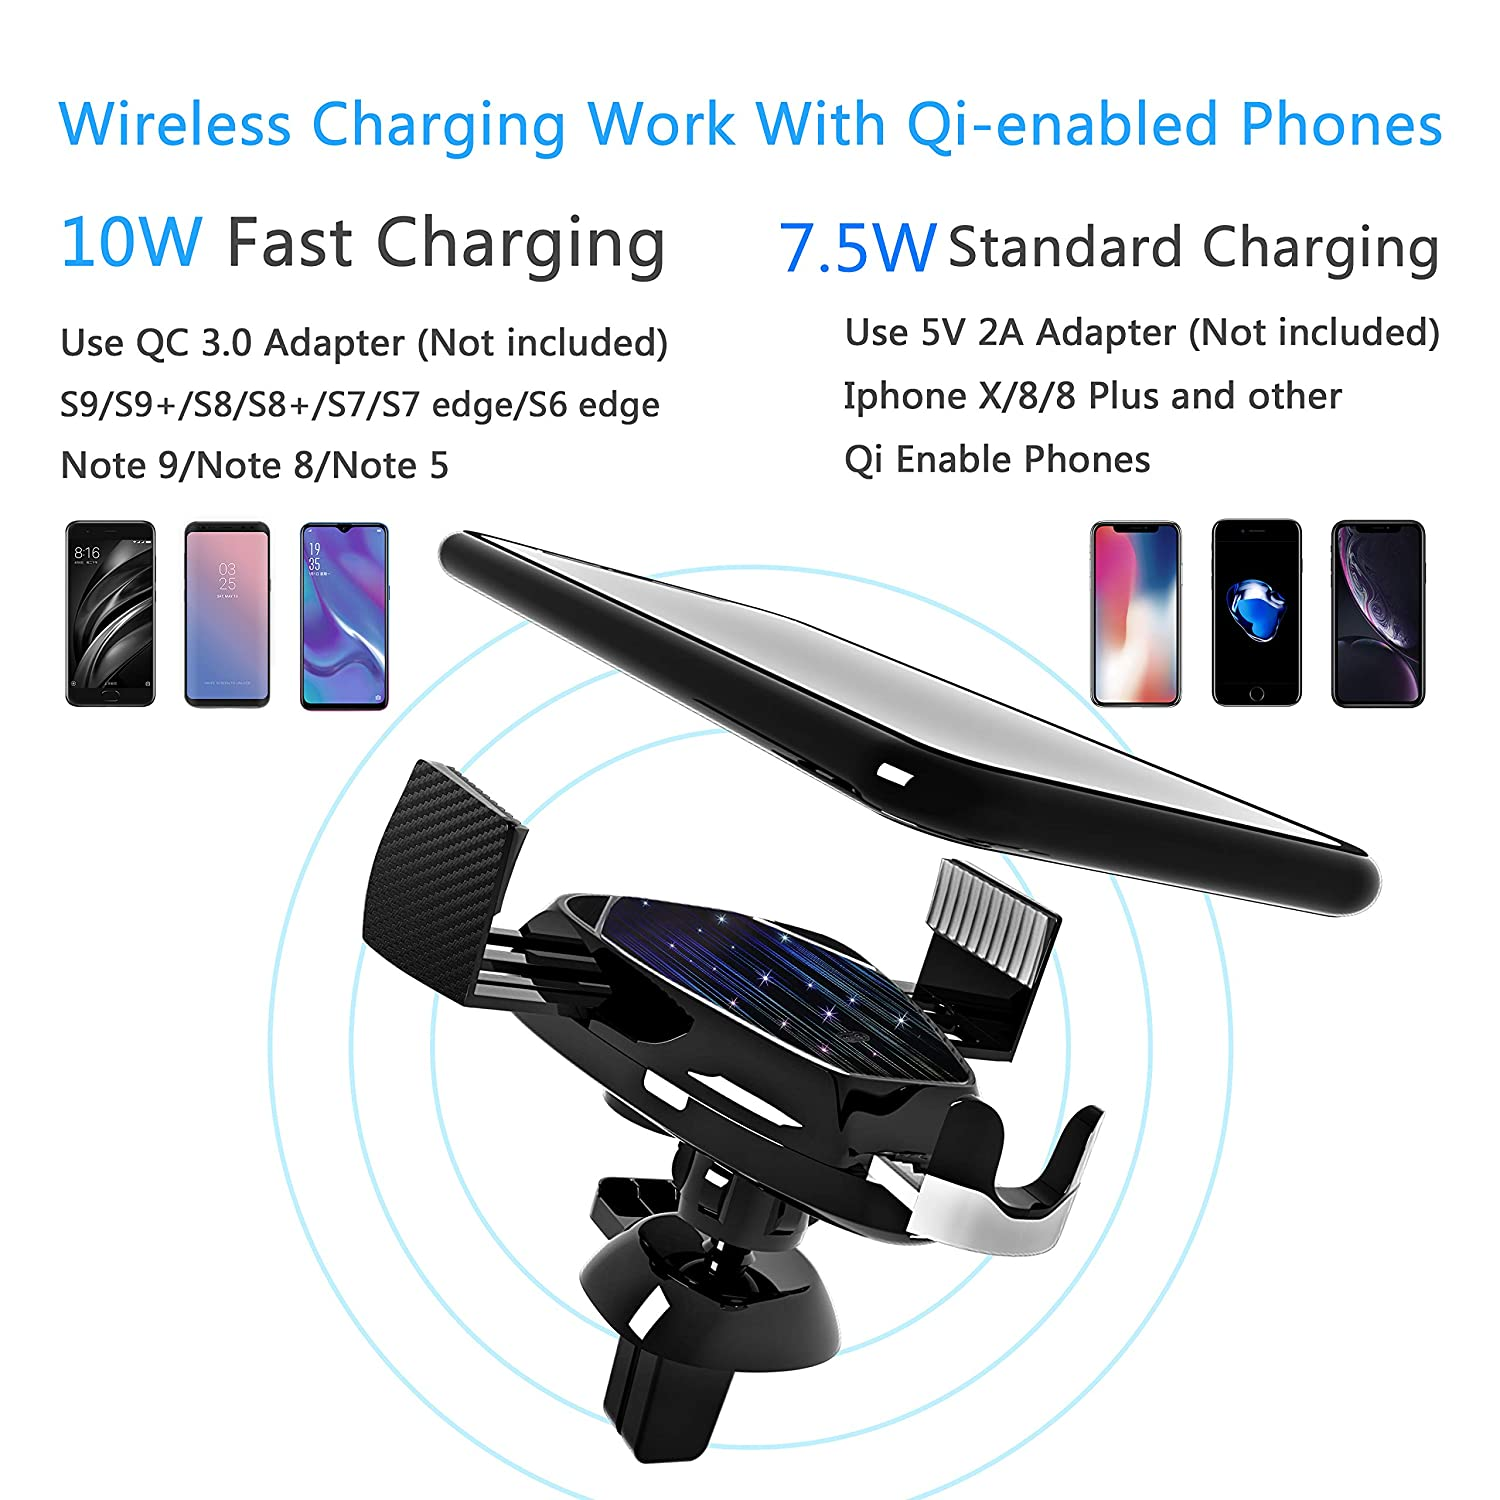 Auto-Clamping Wireless Car Charger with Infrared Motion Sensor, 10W 7.5W Fast Charging Car Phone Holder, Air Vent Compatible with iPhone Xs Max X XR 8 8 Plus, Samsung Note 9 S9 S9 S8